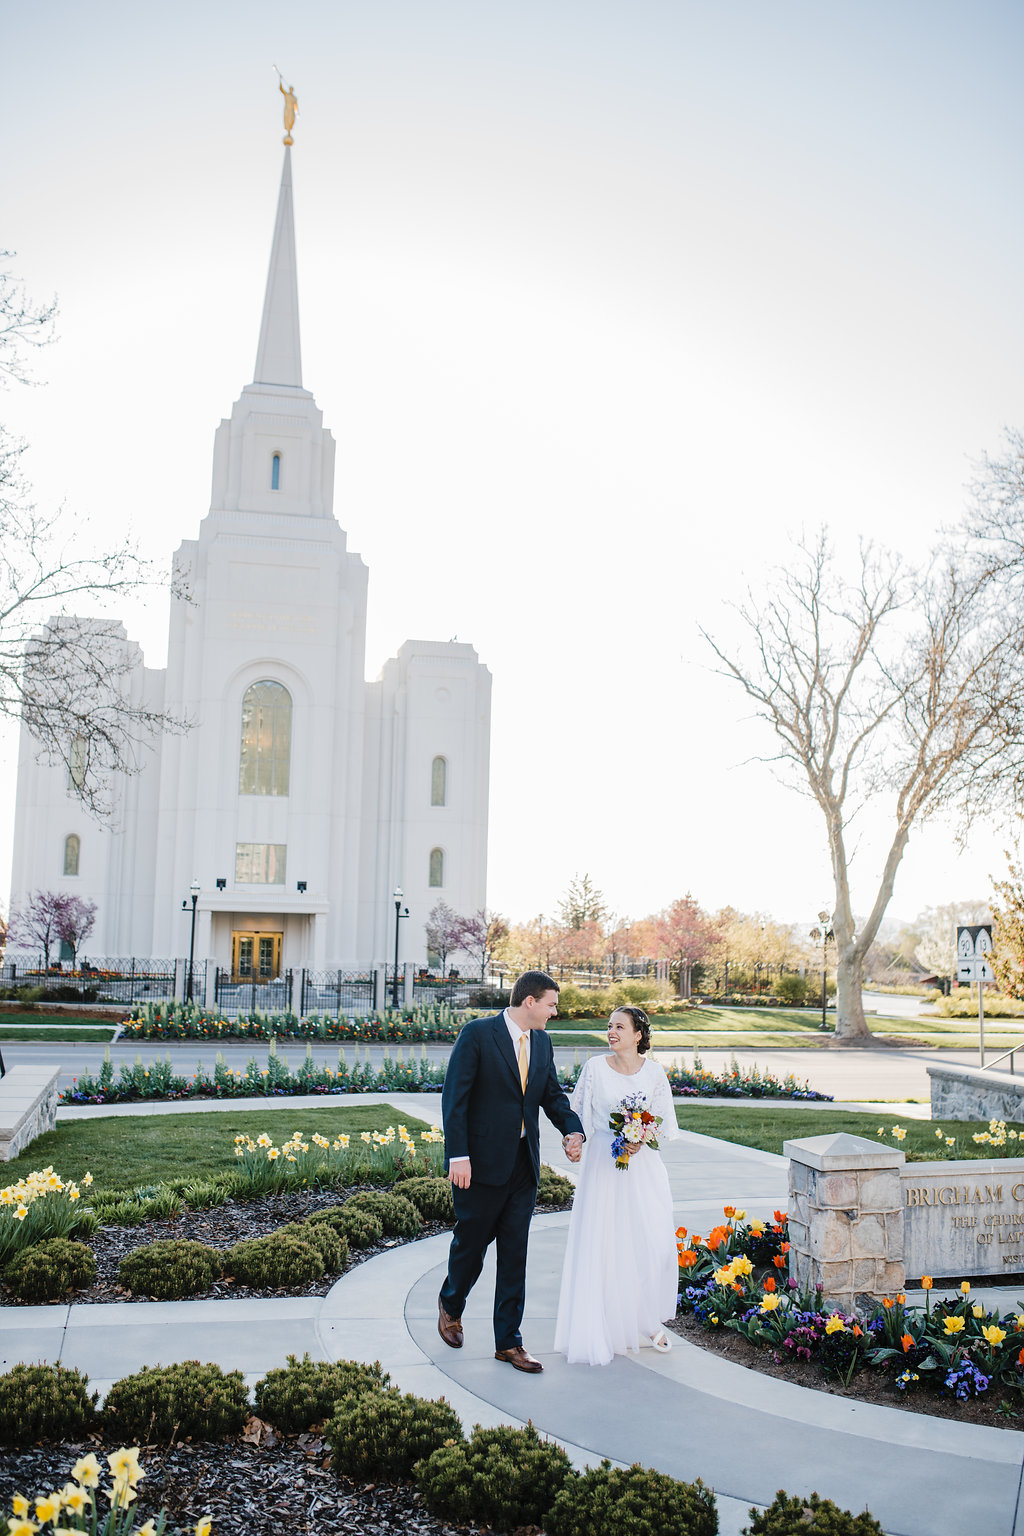 mormon wedding lds brigham city temple northern utah wedding photographer young couple lds romantic temple grounds formals photography